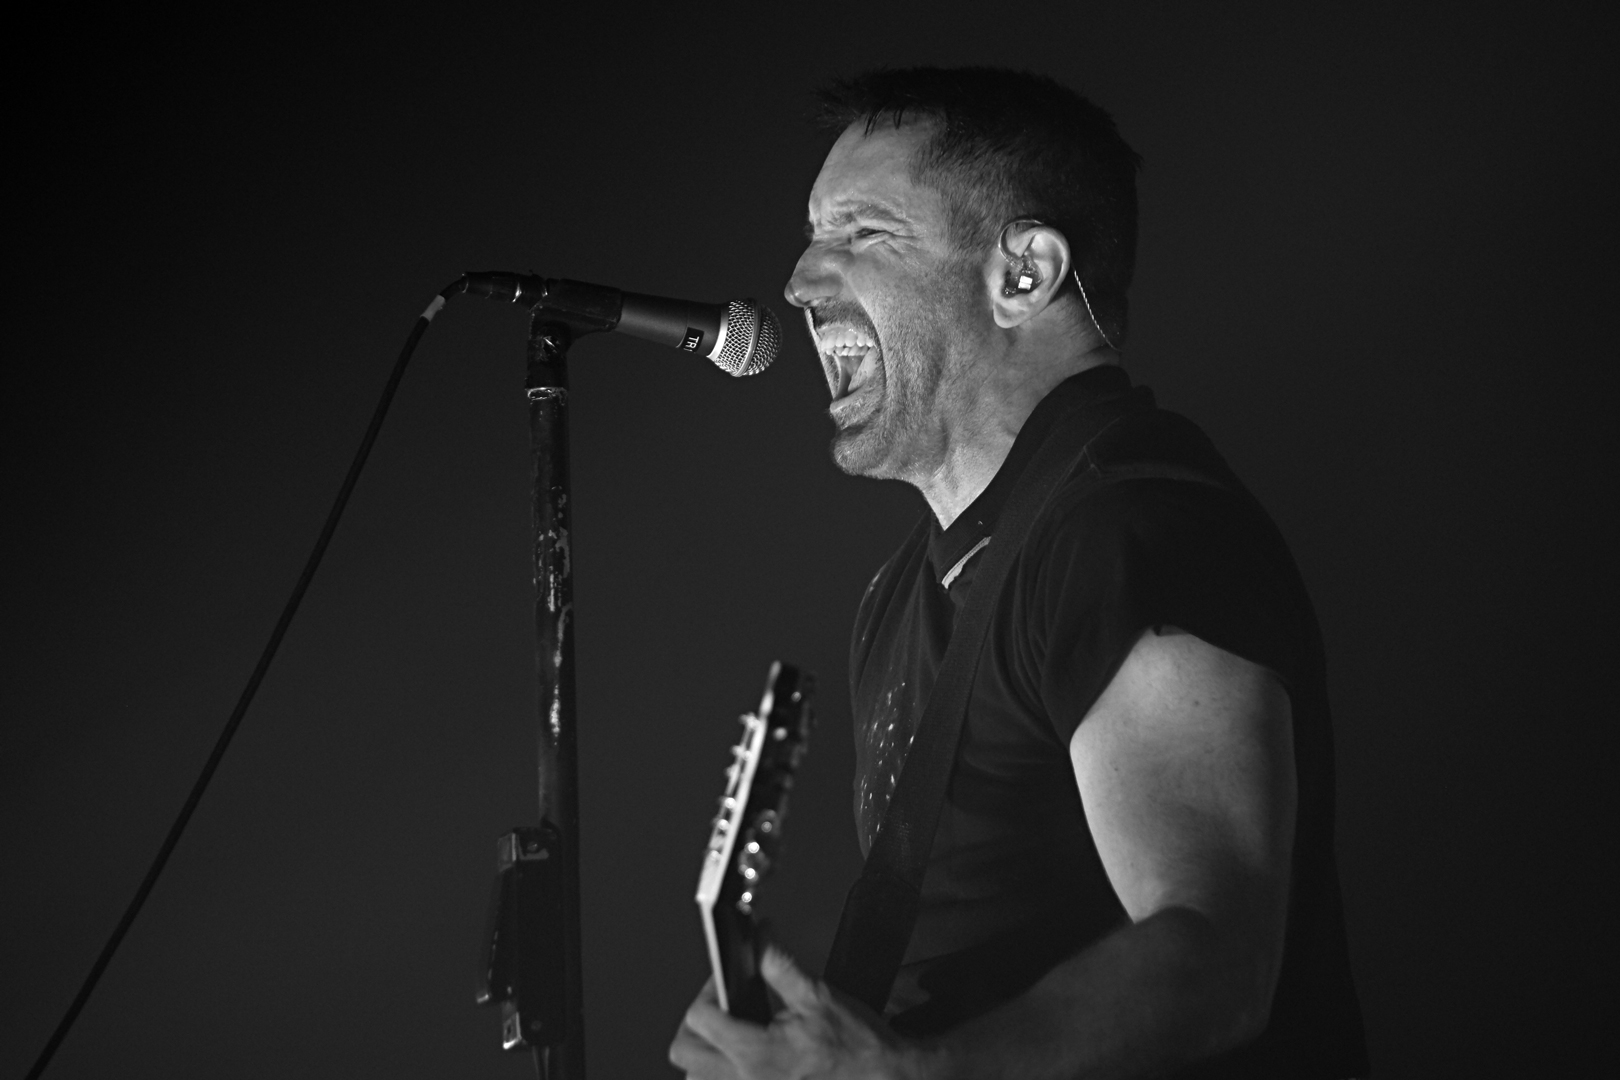 AGING OUT OF ANGST: NINE INCH NAILS LIVE at the SAENGER